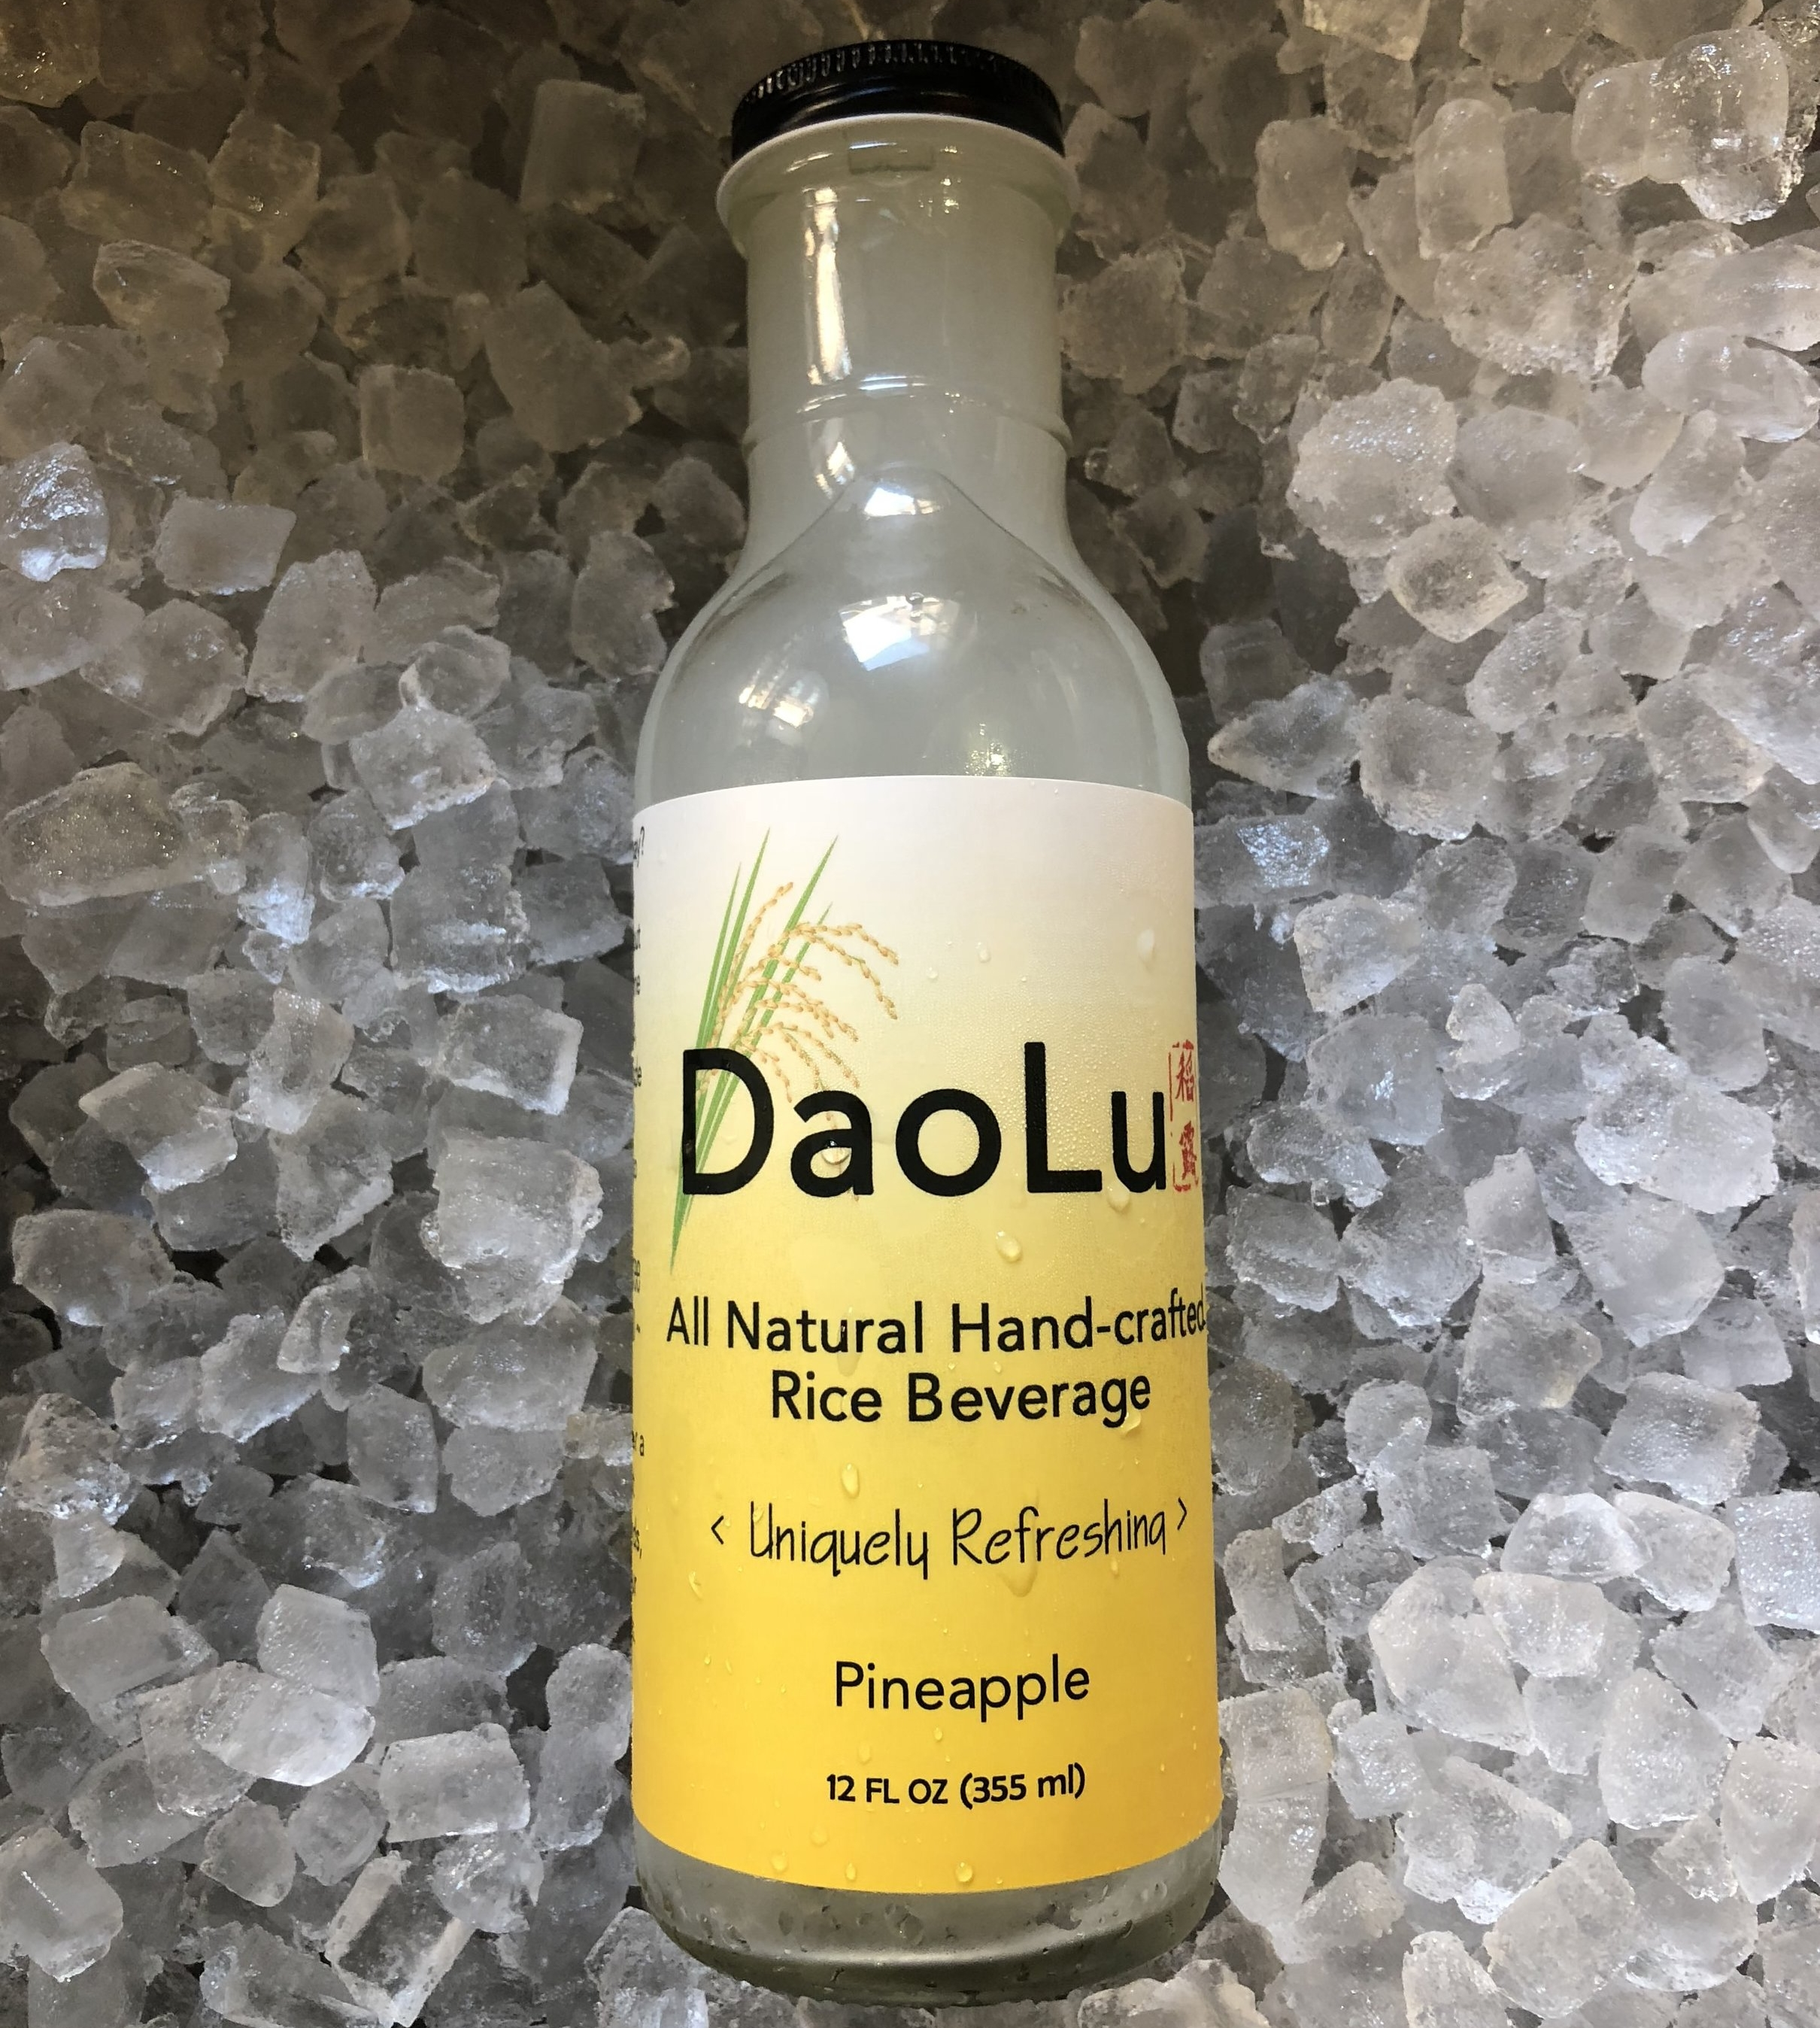 pineapple - We don't always have the time to go on a tropical vacation, but DaoLu's Pineapple flavored drink will bring the vacation to you! The fresh and fruity tones of this drink are the perfect addition to clean eating while still tickling your palate in the best way.